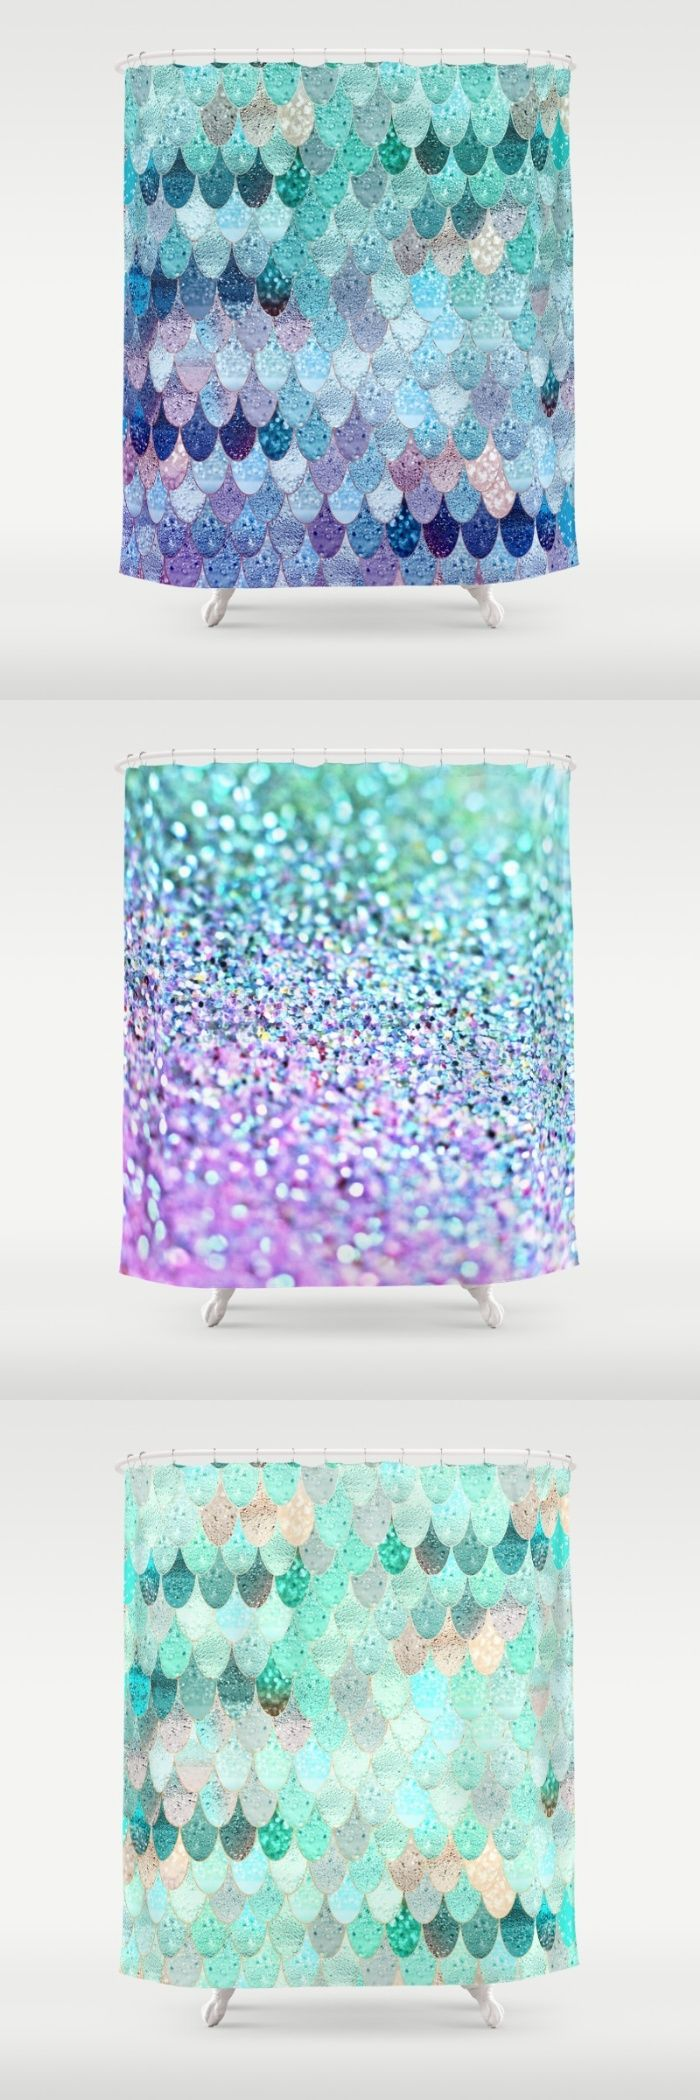 Mermaid bathroom decor - Summer Mermaid Ii Shower Curtain Mermaid Bedroomgirl Bathroom Decormermaid